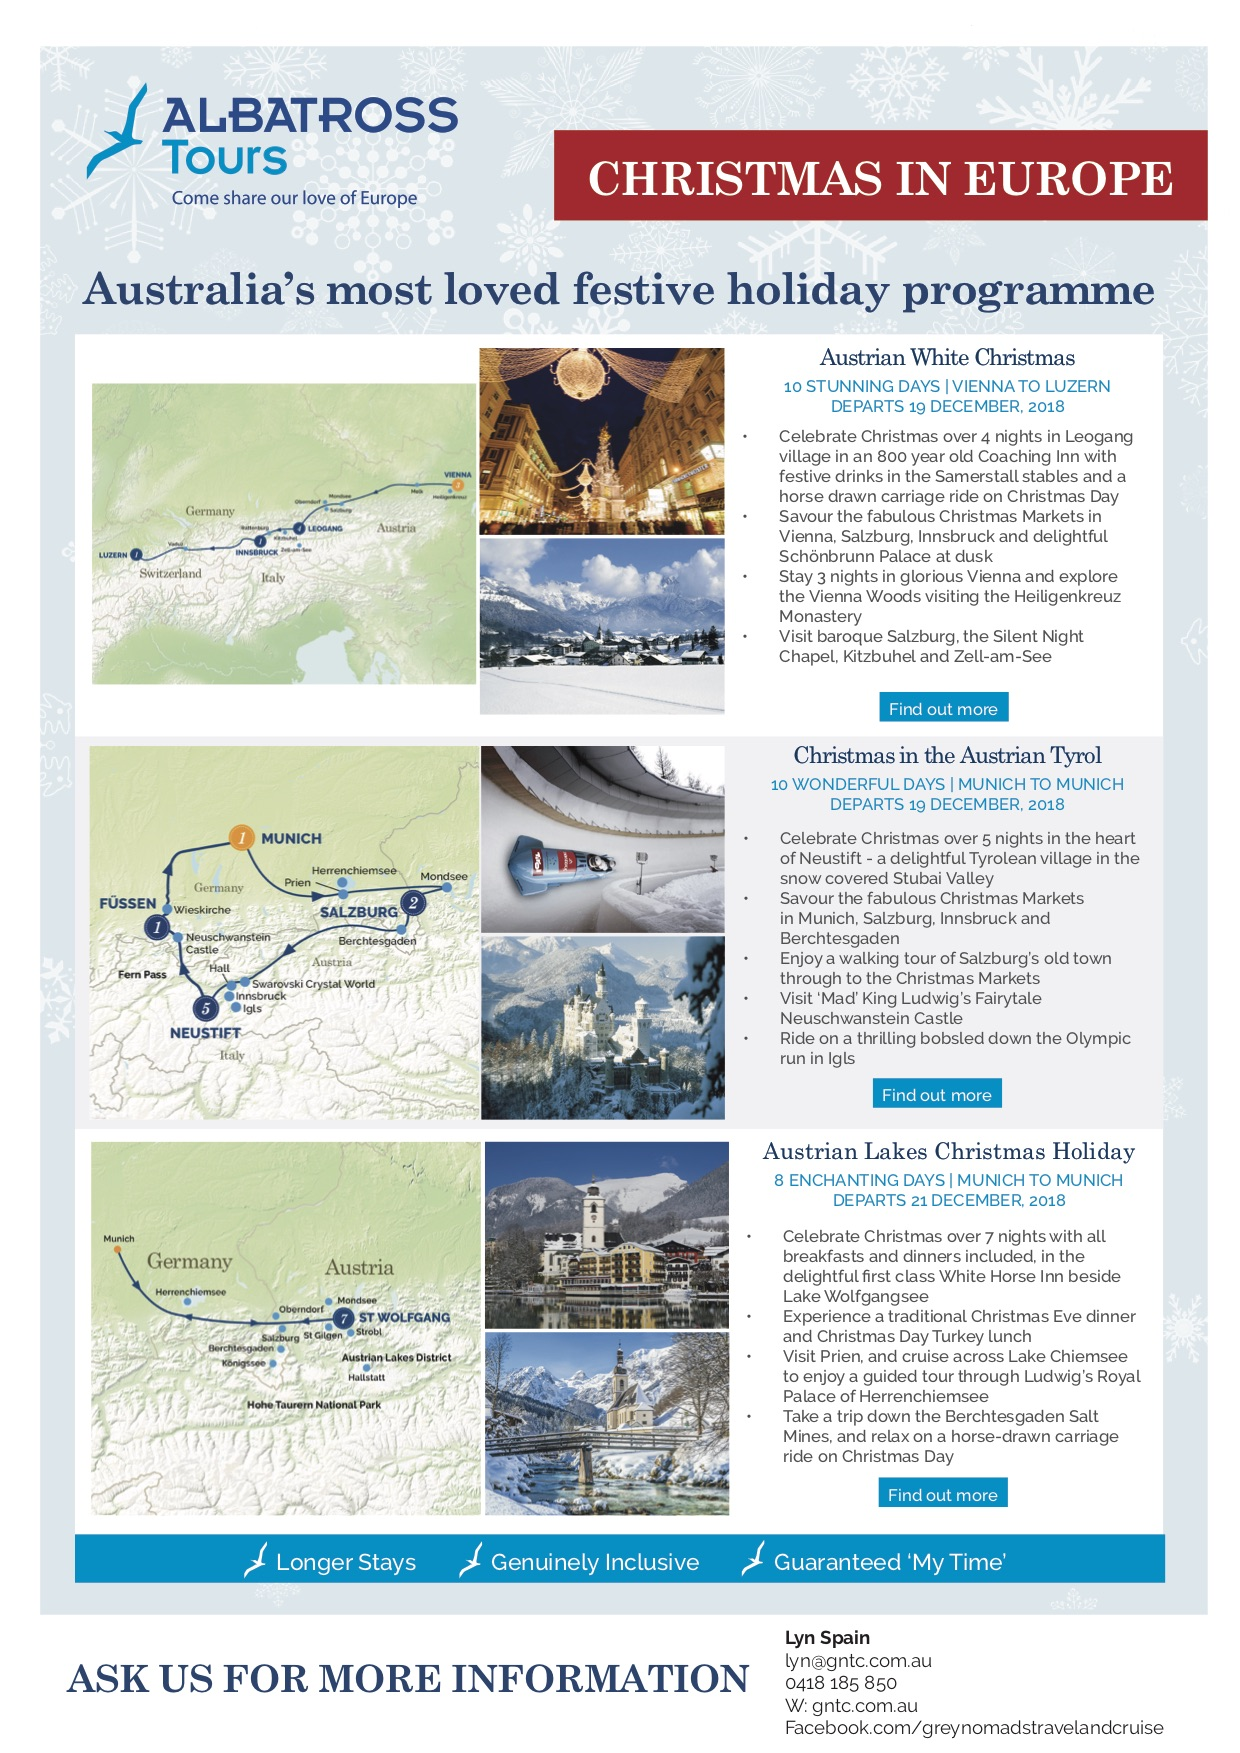 Christmas in Europe | grey nomads travel and cruise – 0418 185 850